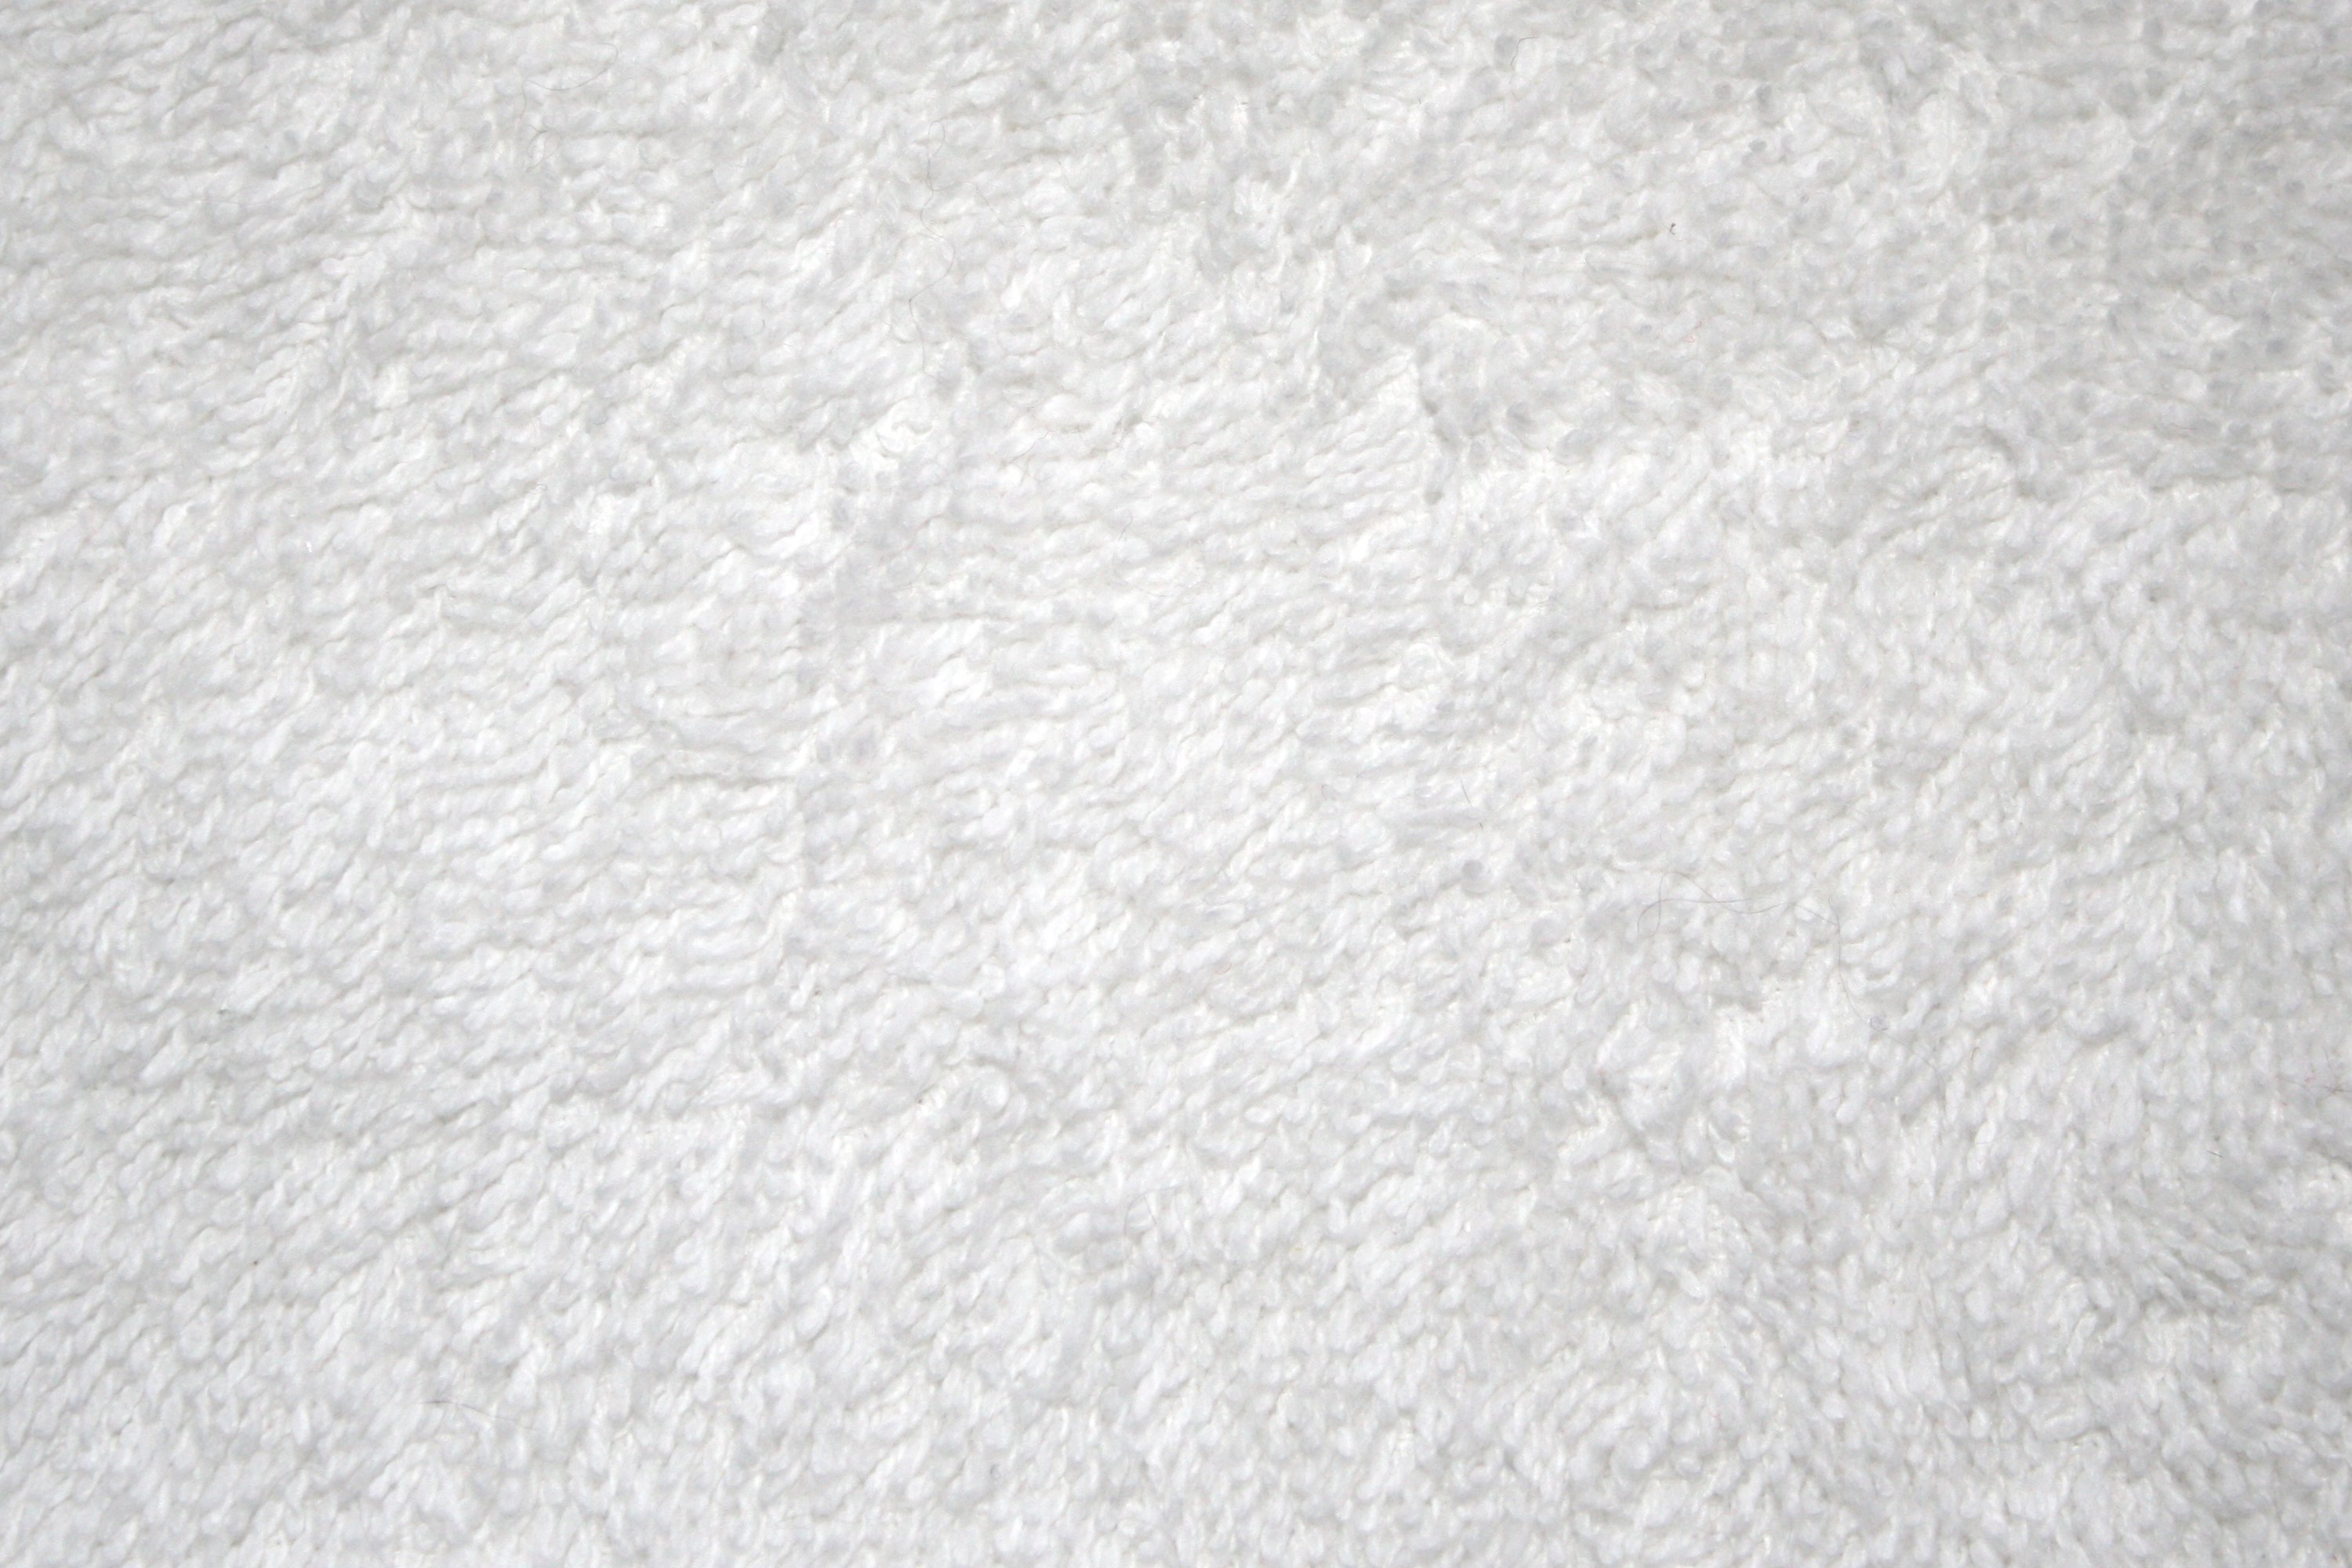 White Terry Cloth Closeup Texture Picture Photograph Photos 3000x2000